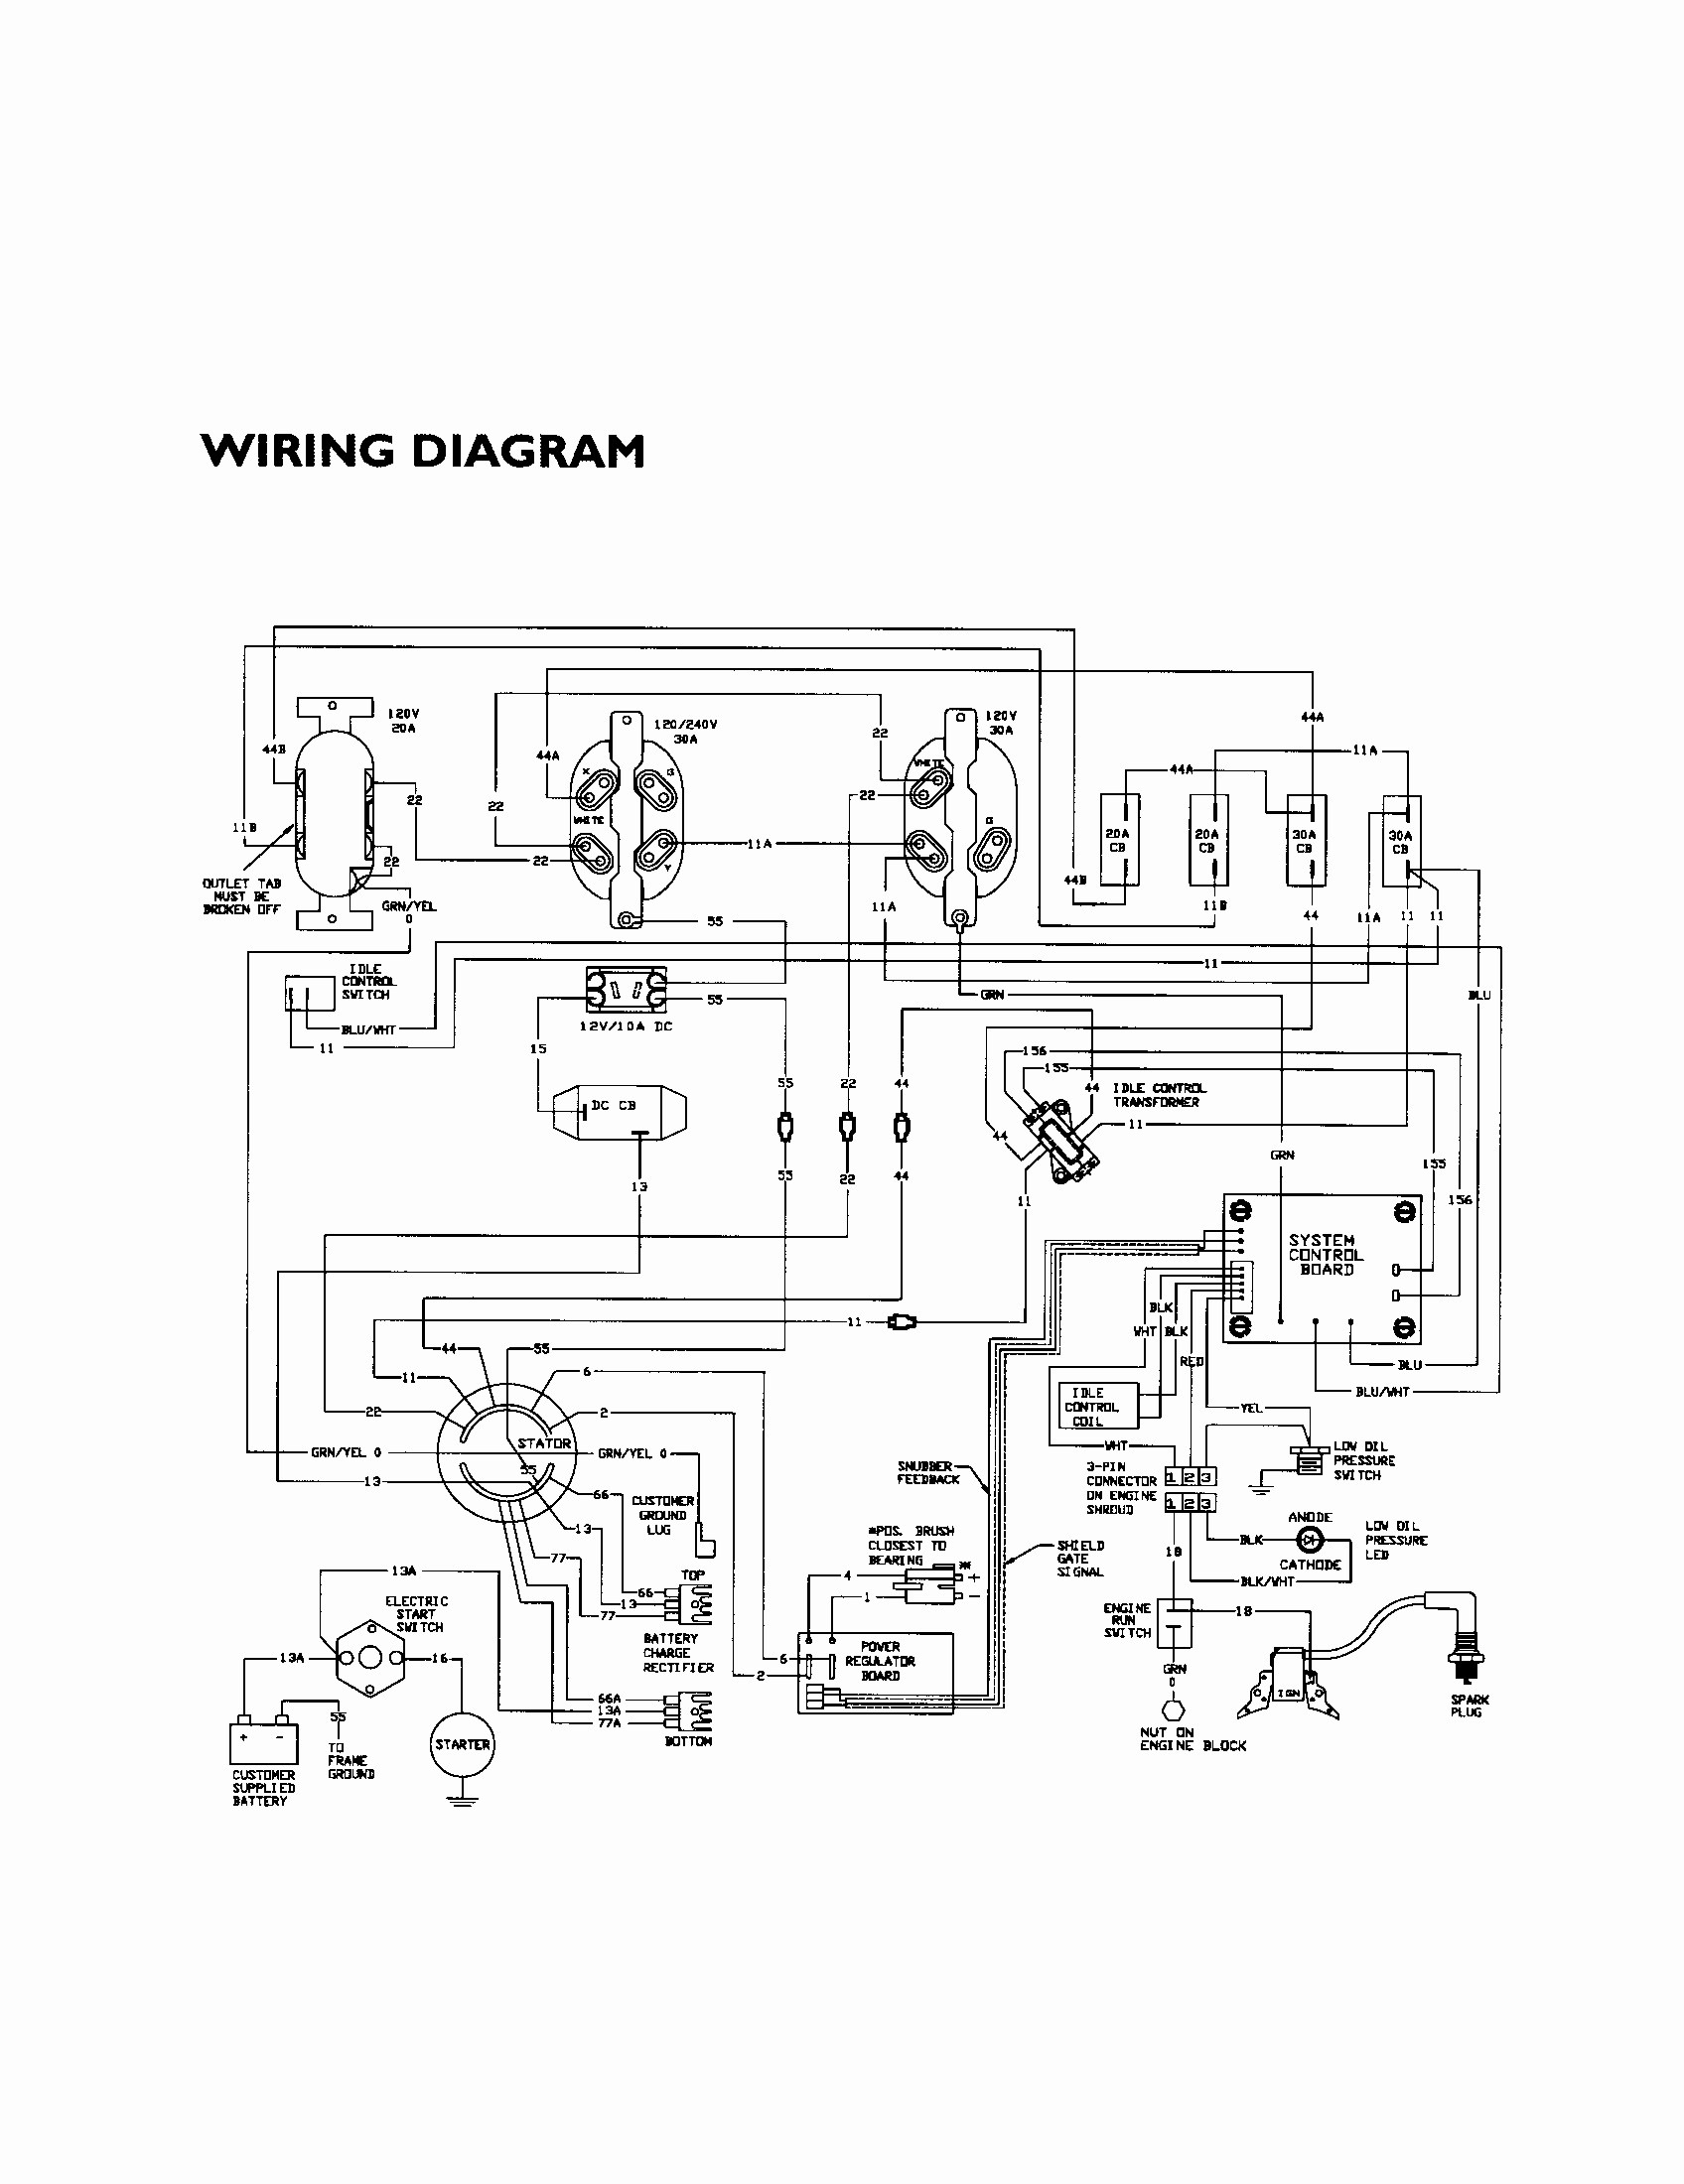 Diagram Portable Generator Transfer Switch Wiring Diagram Gallery